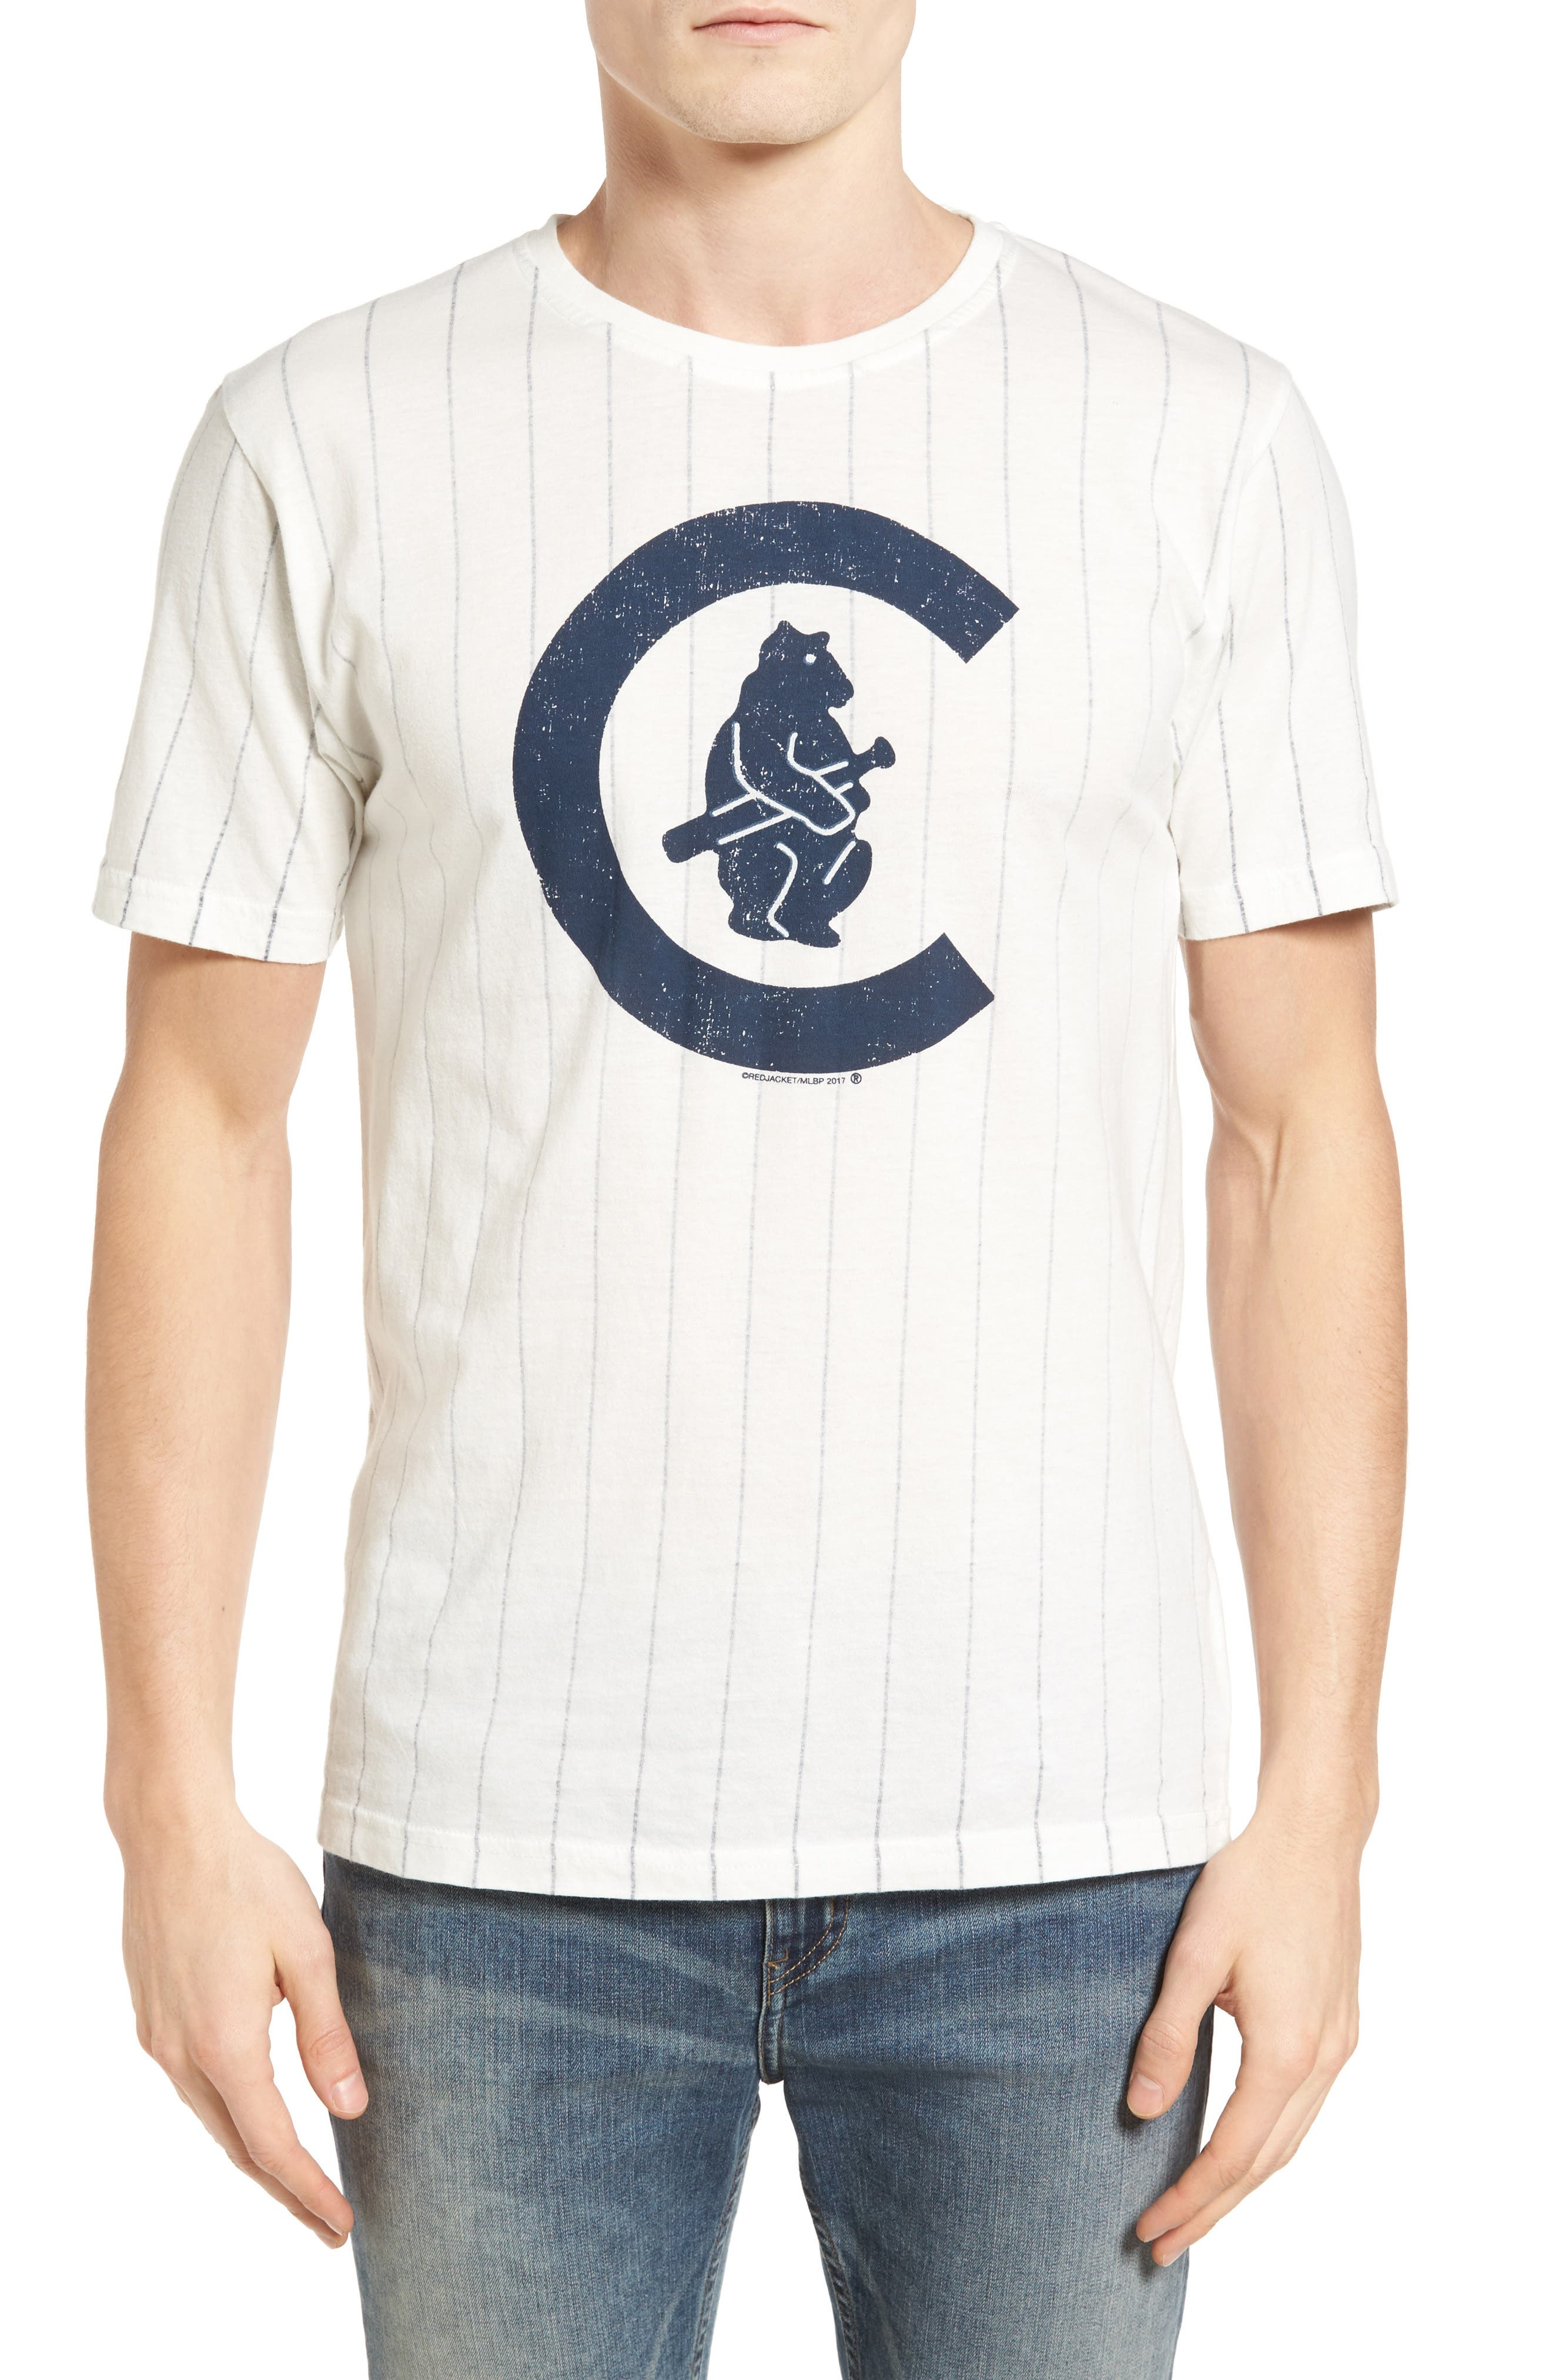 Brass Tack Chicago Cubs T-Shirt,                             Main thumbnail 1, color,